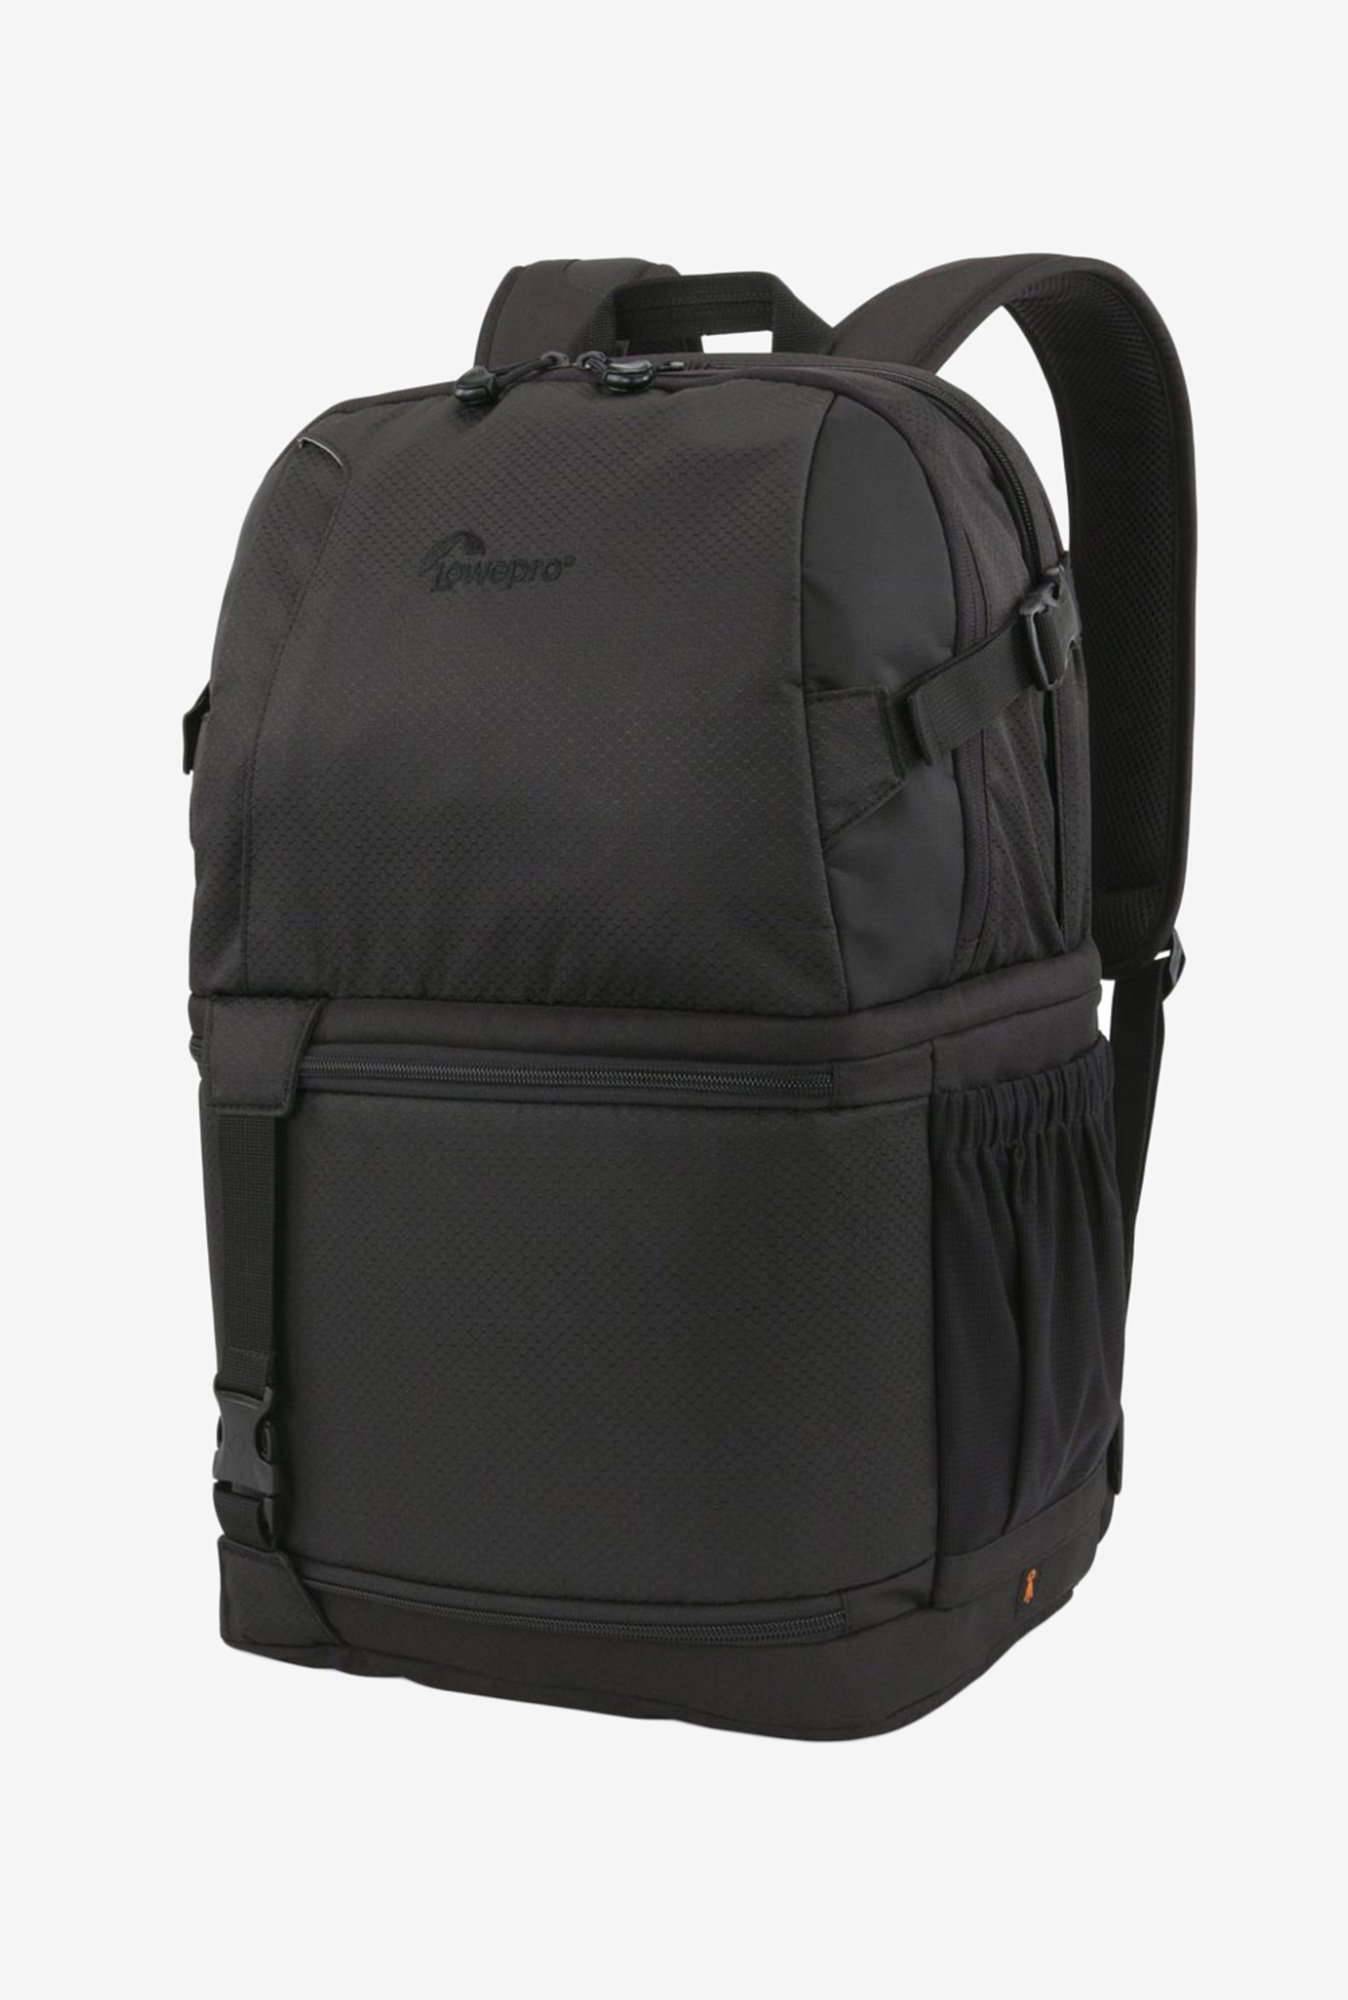 Lowepro Video Fastpack 350AW Backpack Black